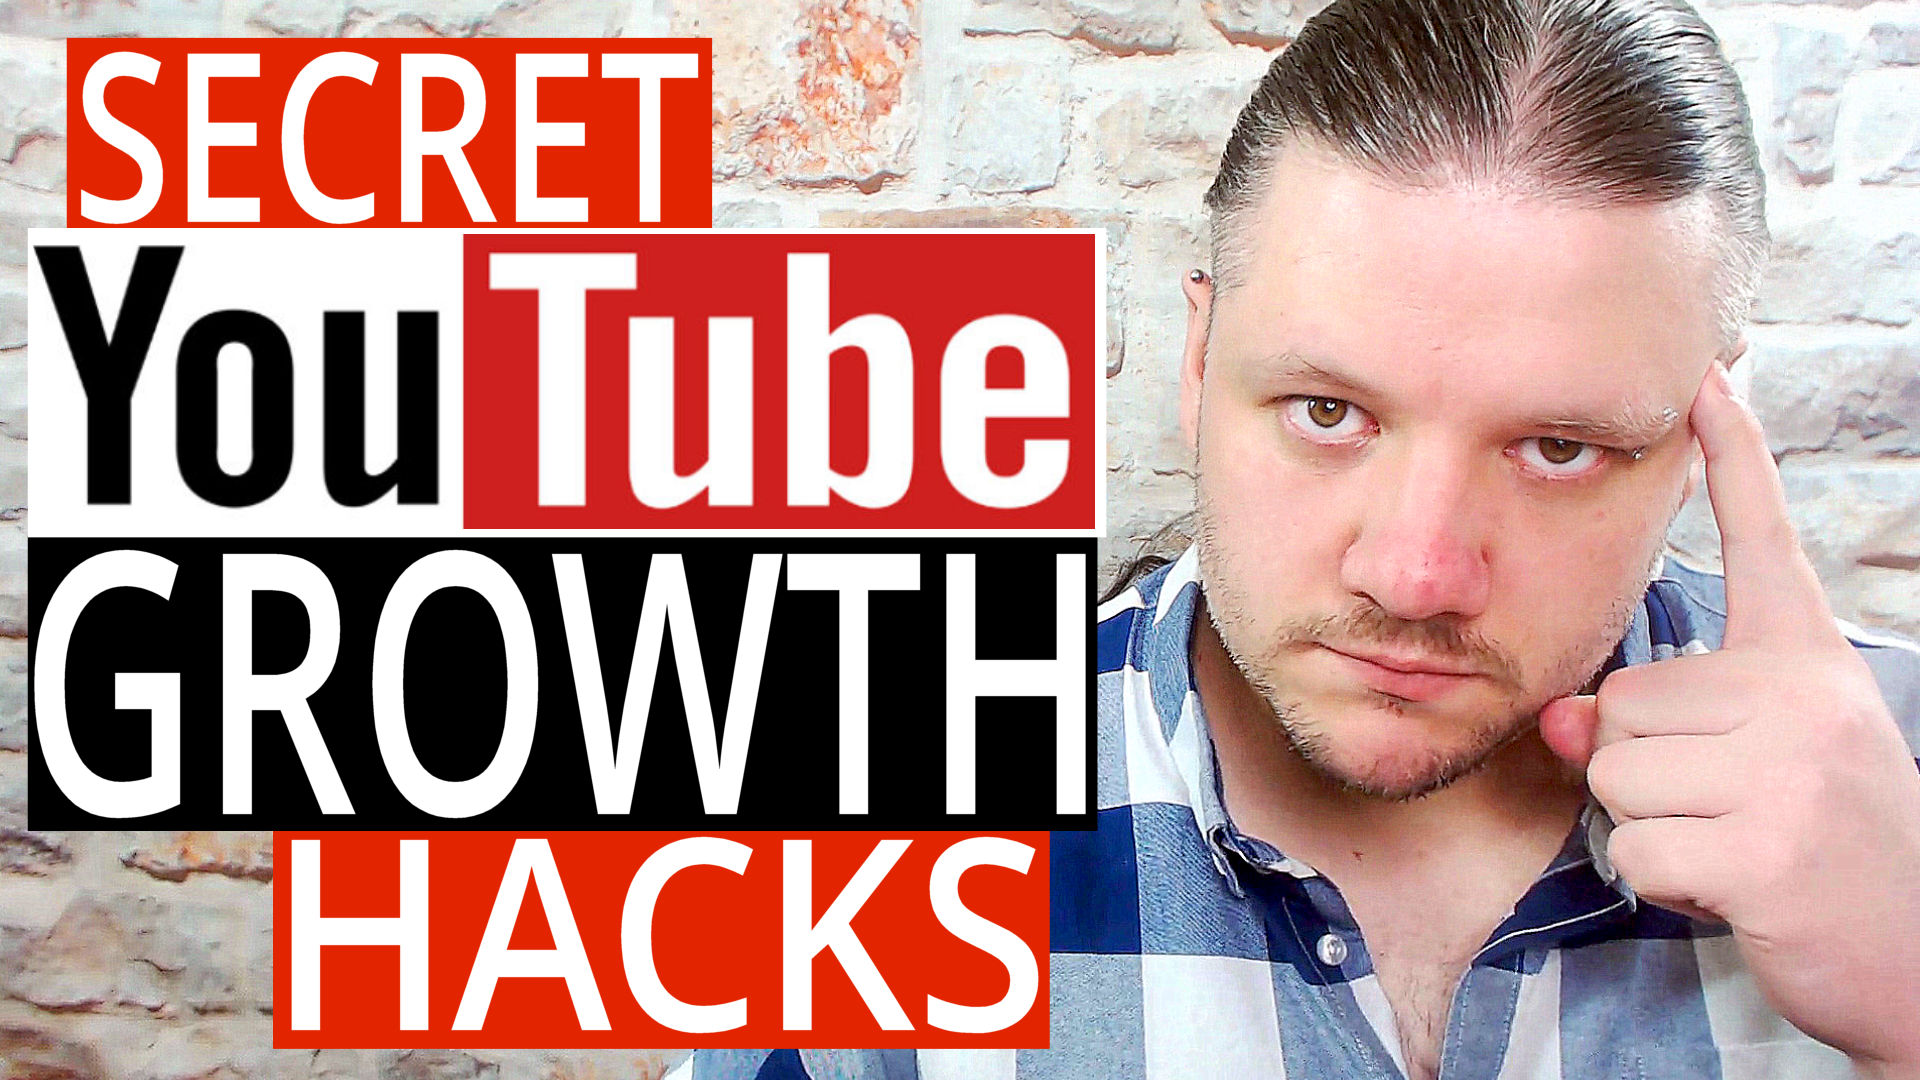 youtube growth hacks,youtube growth hacks to grow your channel,youtube secrets,youtube secrets 2018,Secrets To Growing A YouTube Channel,Growing A YouTube Channel,YouTube Growth,Growth Hacks,youtube hacks,grow your channel on youtube,grow on youtube,hacks,secrets,growth,how to grow your youtube channel,grow your channel,grow your youtube channel,how to grow your channel,youtube growth 2018,youtube growth secrets,youtube growth strategies,youtube growth tips